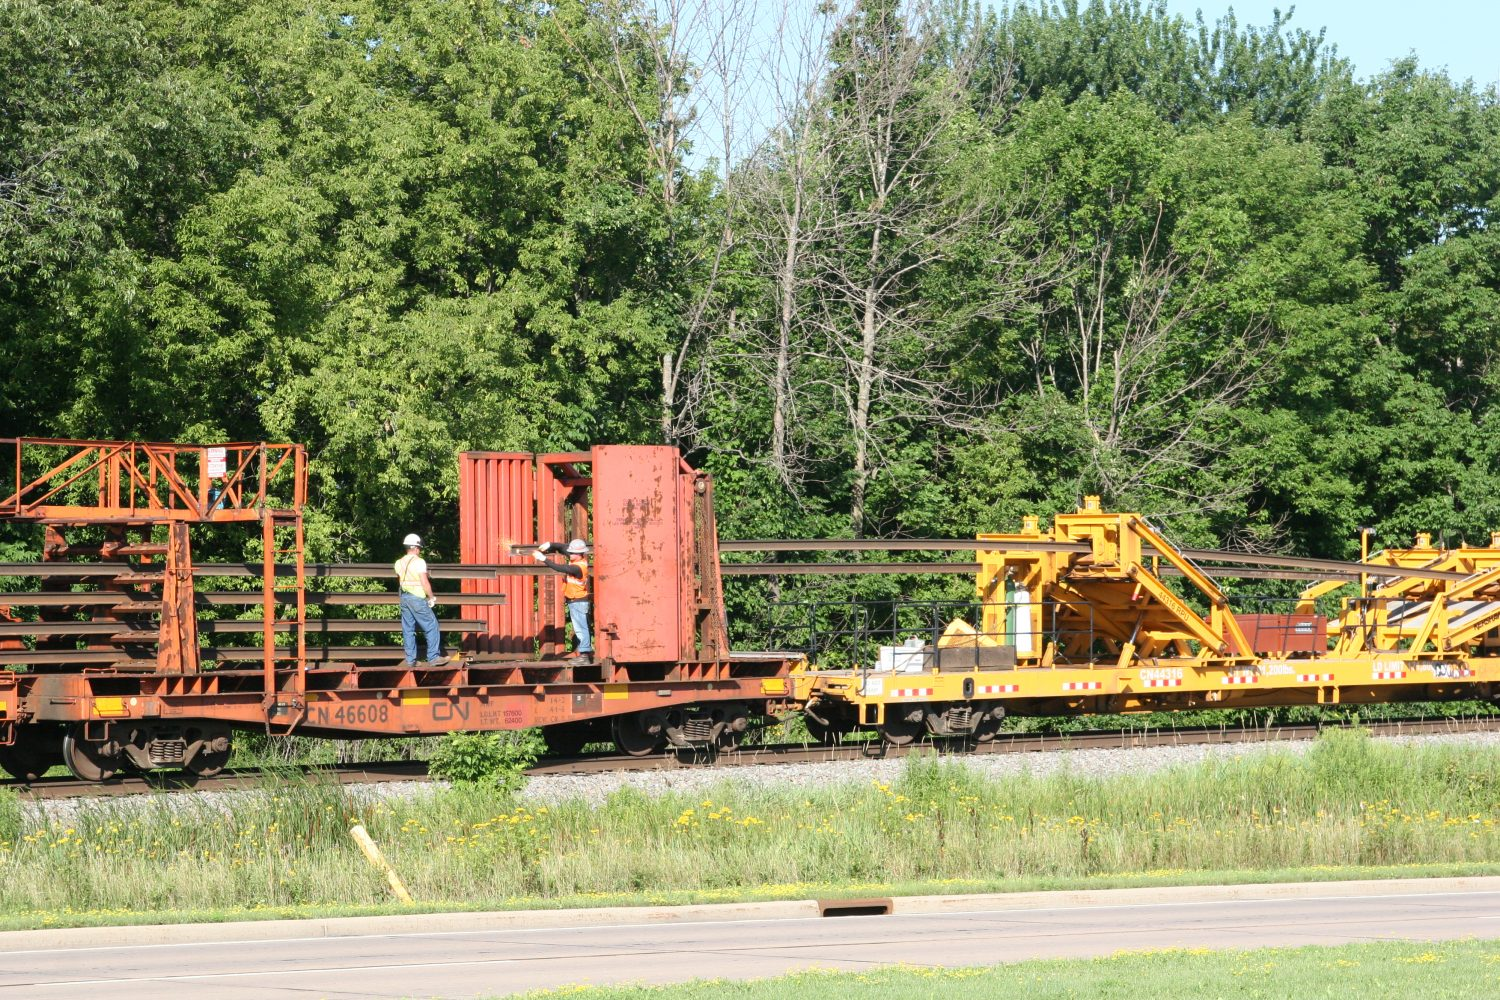 Canadian National crews load discarded rails just north of Marshfield Monday morning. The rails were remaining from the recent replacement of the track.